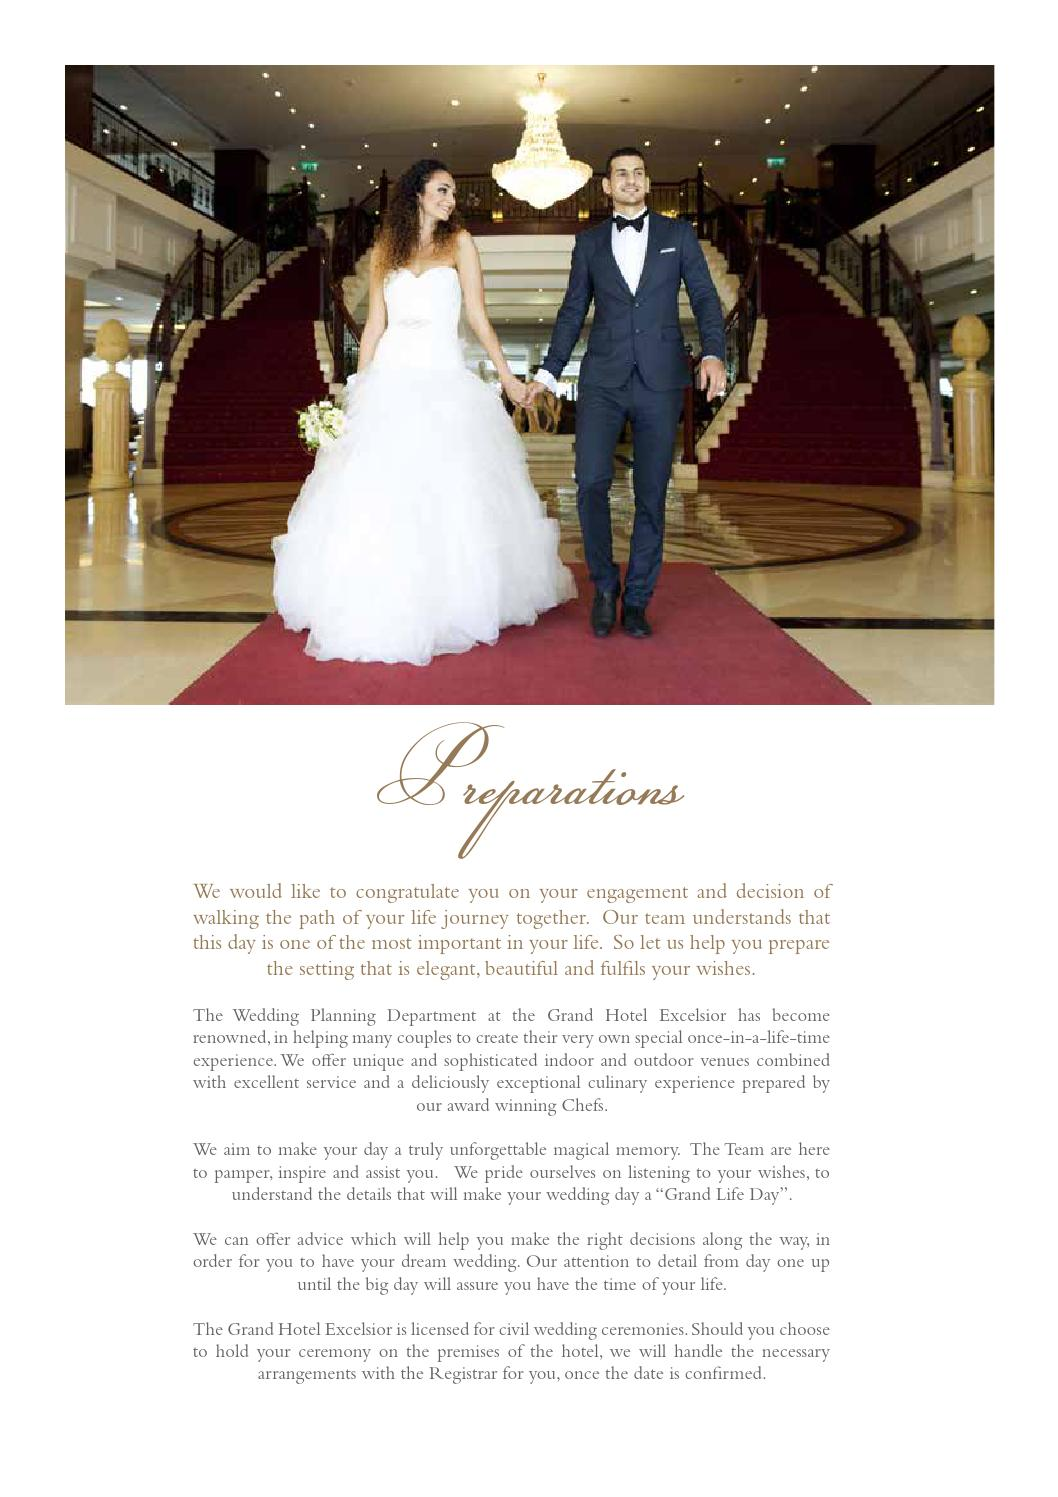 Weddings By The Grand Hotel Excelsior Malta By Grand Hotel Excelsior Issuu